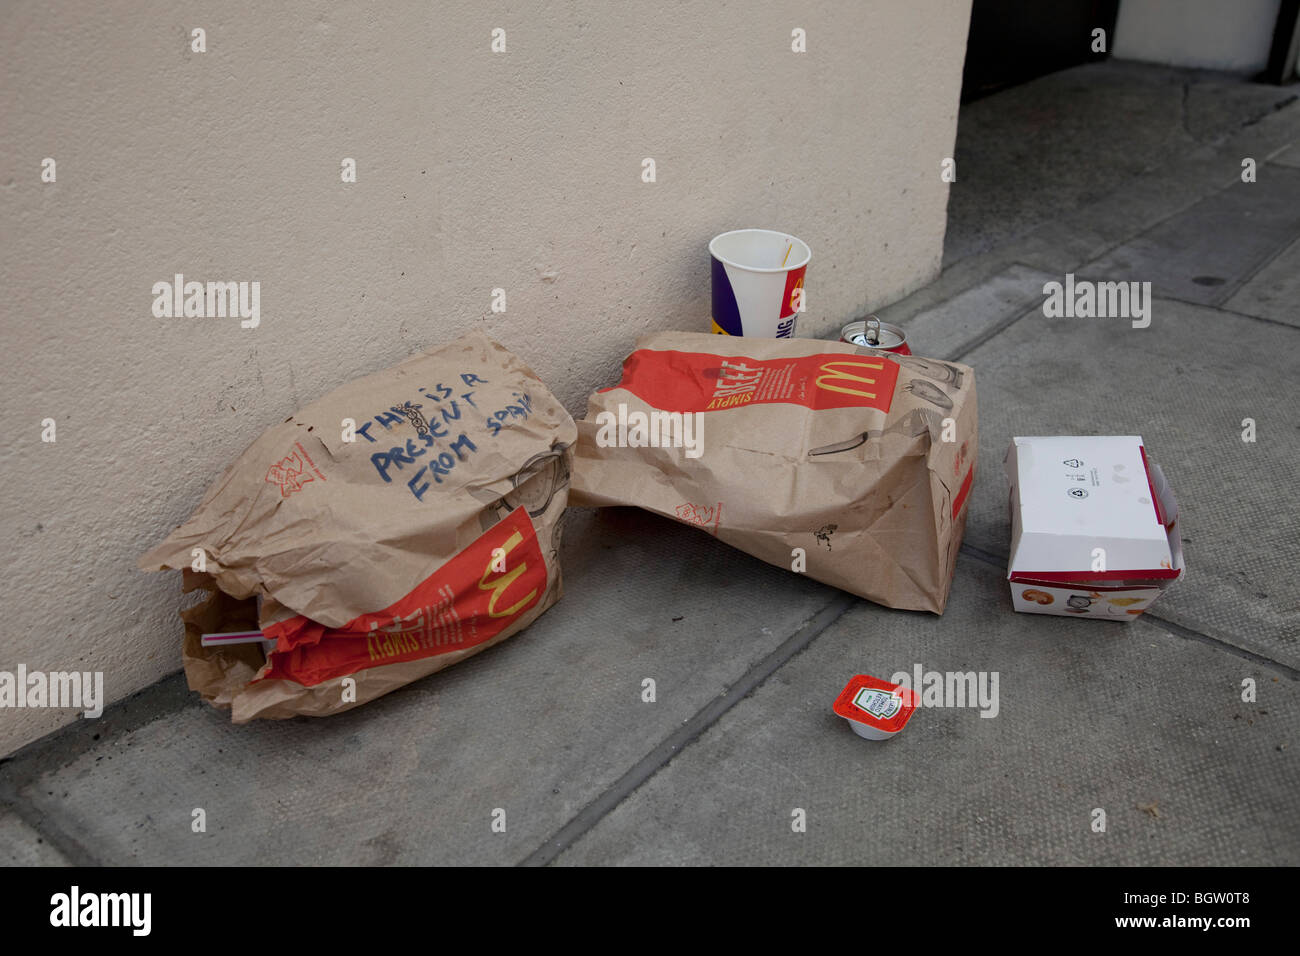 McDonalds litter. Someone has written 'This is a present from Spain' on the rubbish. - Stock Image